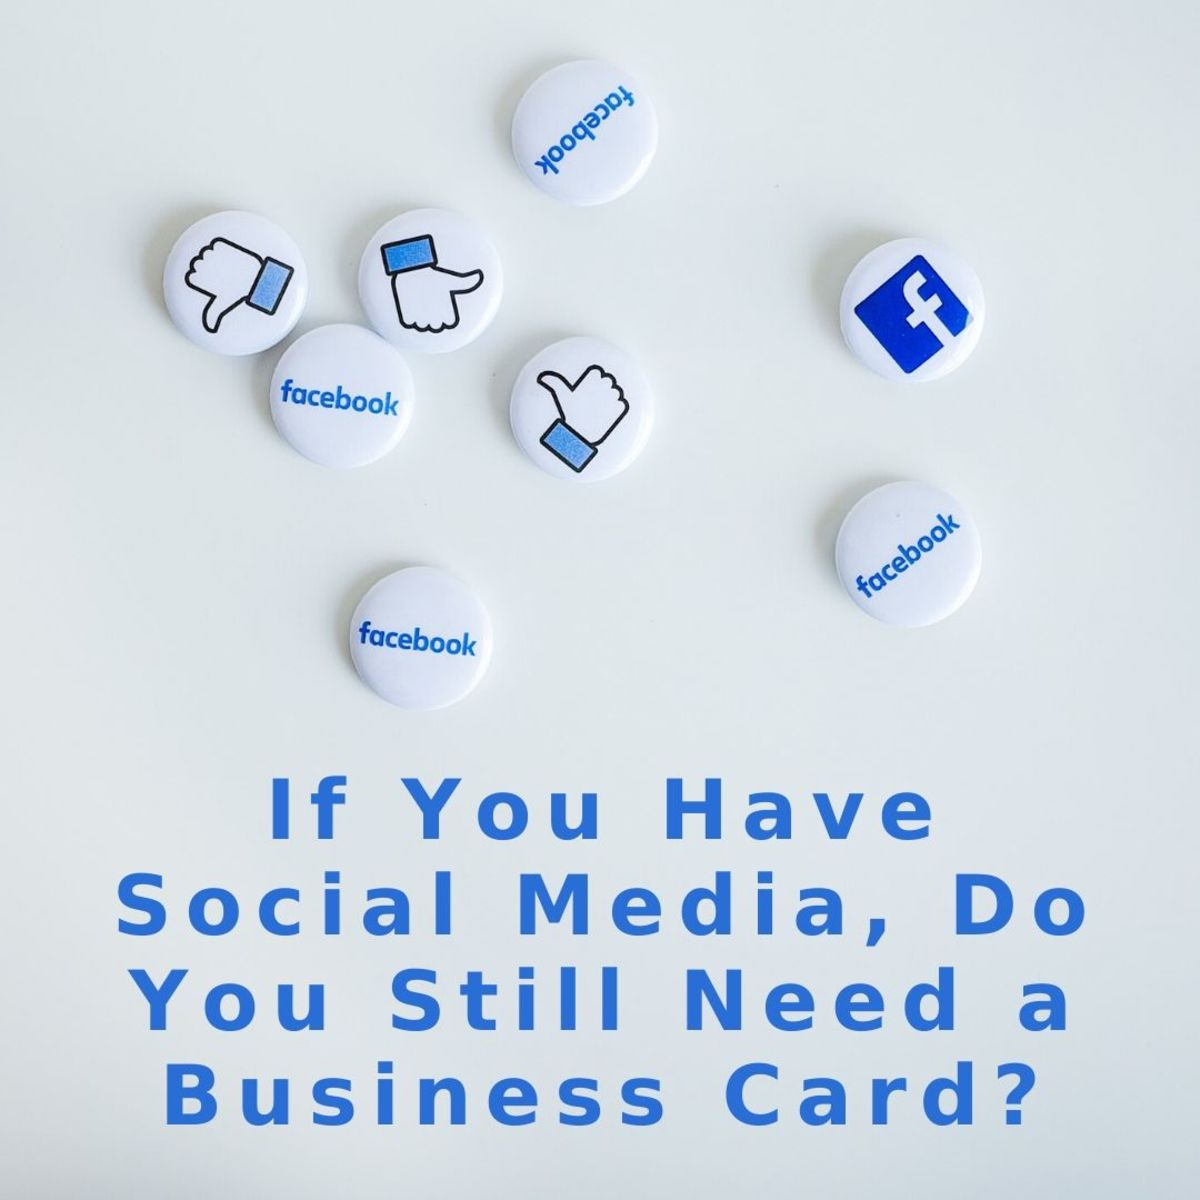 Does the strong presence of social media negate the need for business cards? Read on to find out.